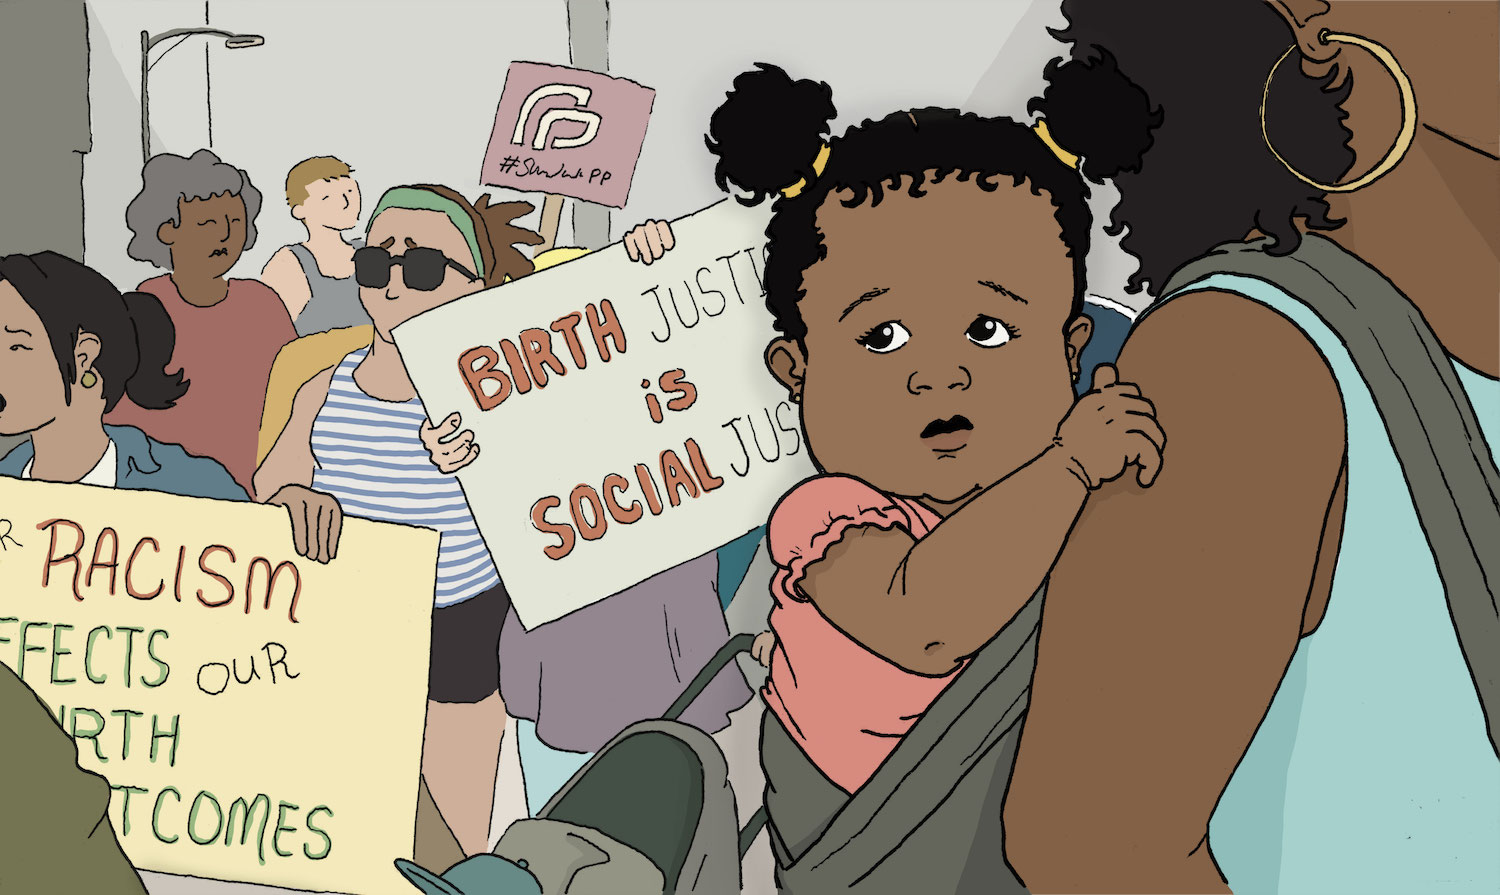 Birth Justice is Social Justice